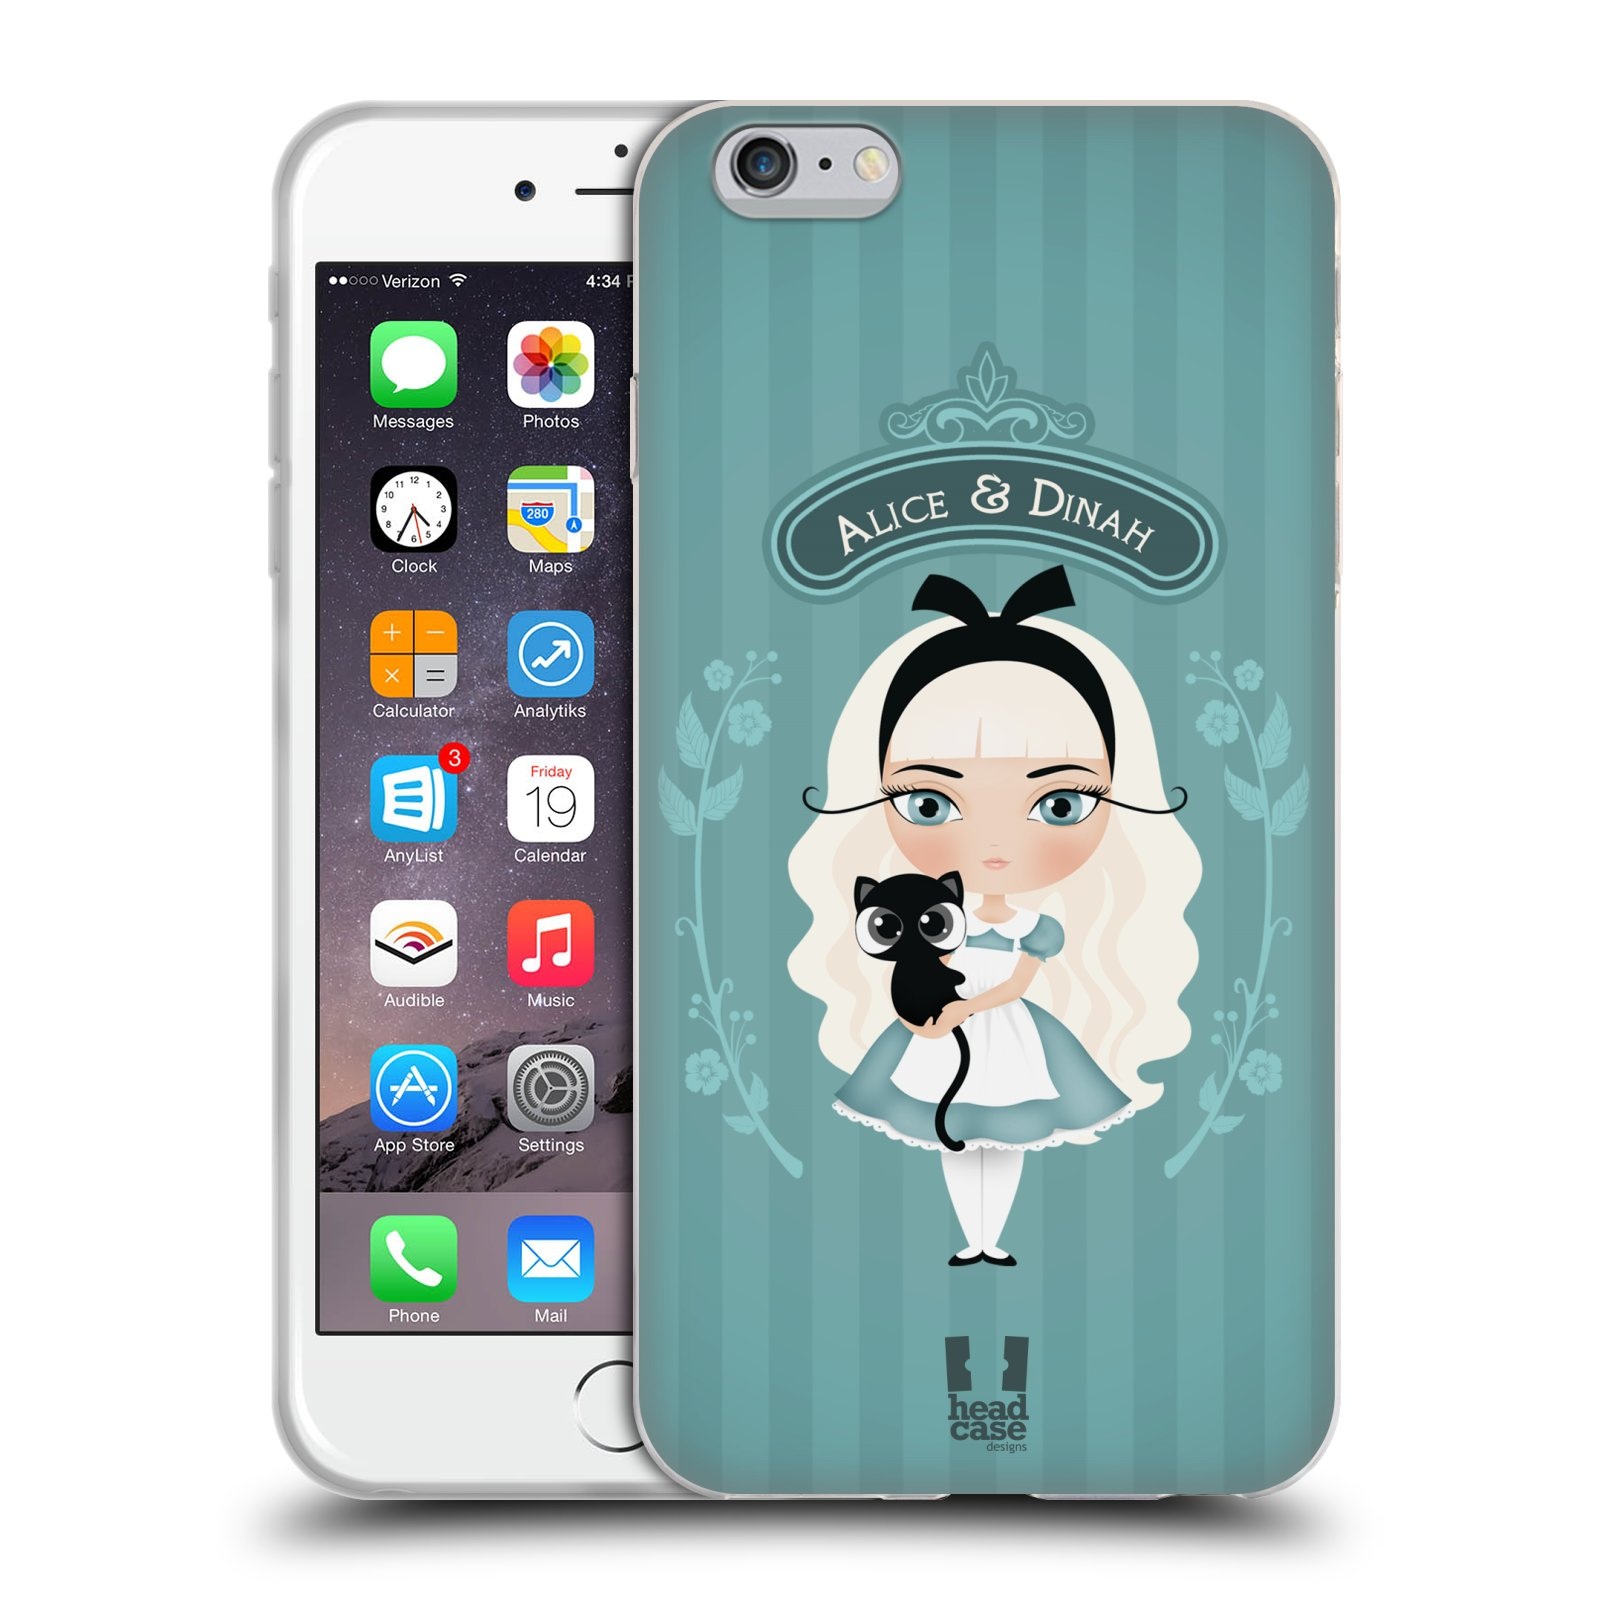 HEAD CASE silikonový obal na mobil Apple Iphone 6 PLUS/ 6S PLUS vzor Alenka v říši divů Alenka